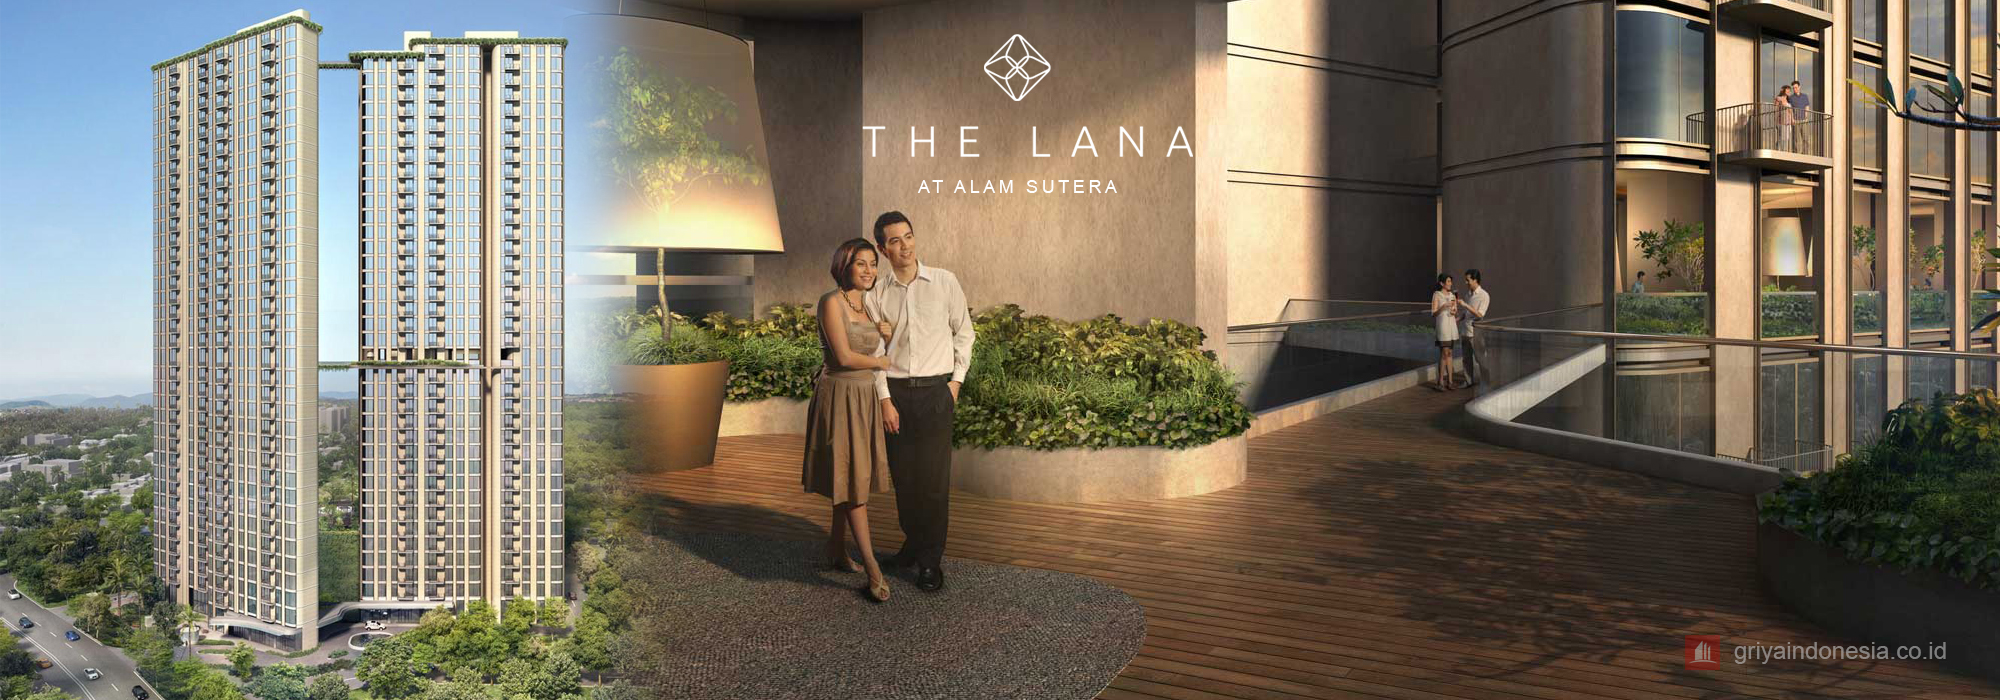 THE LANA at Alam Sutera